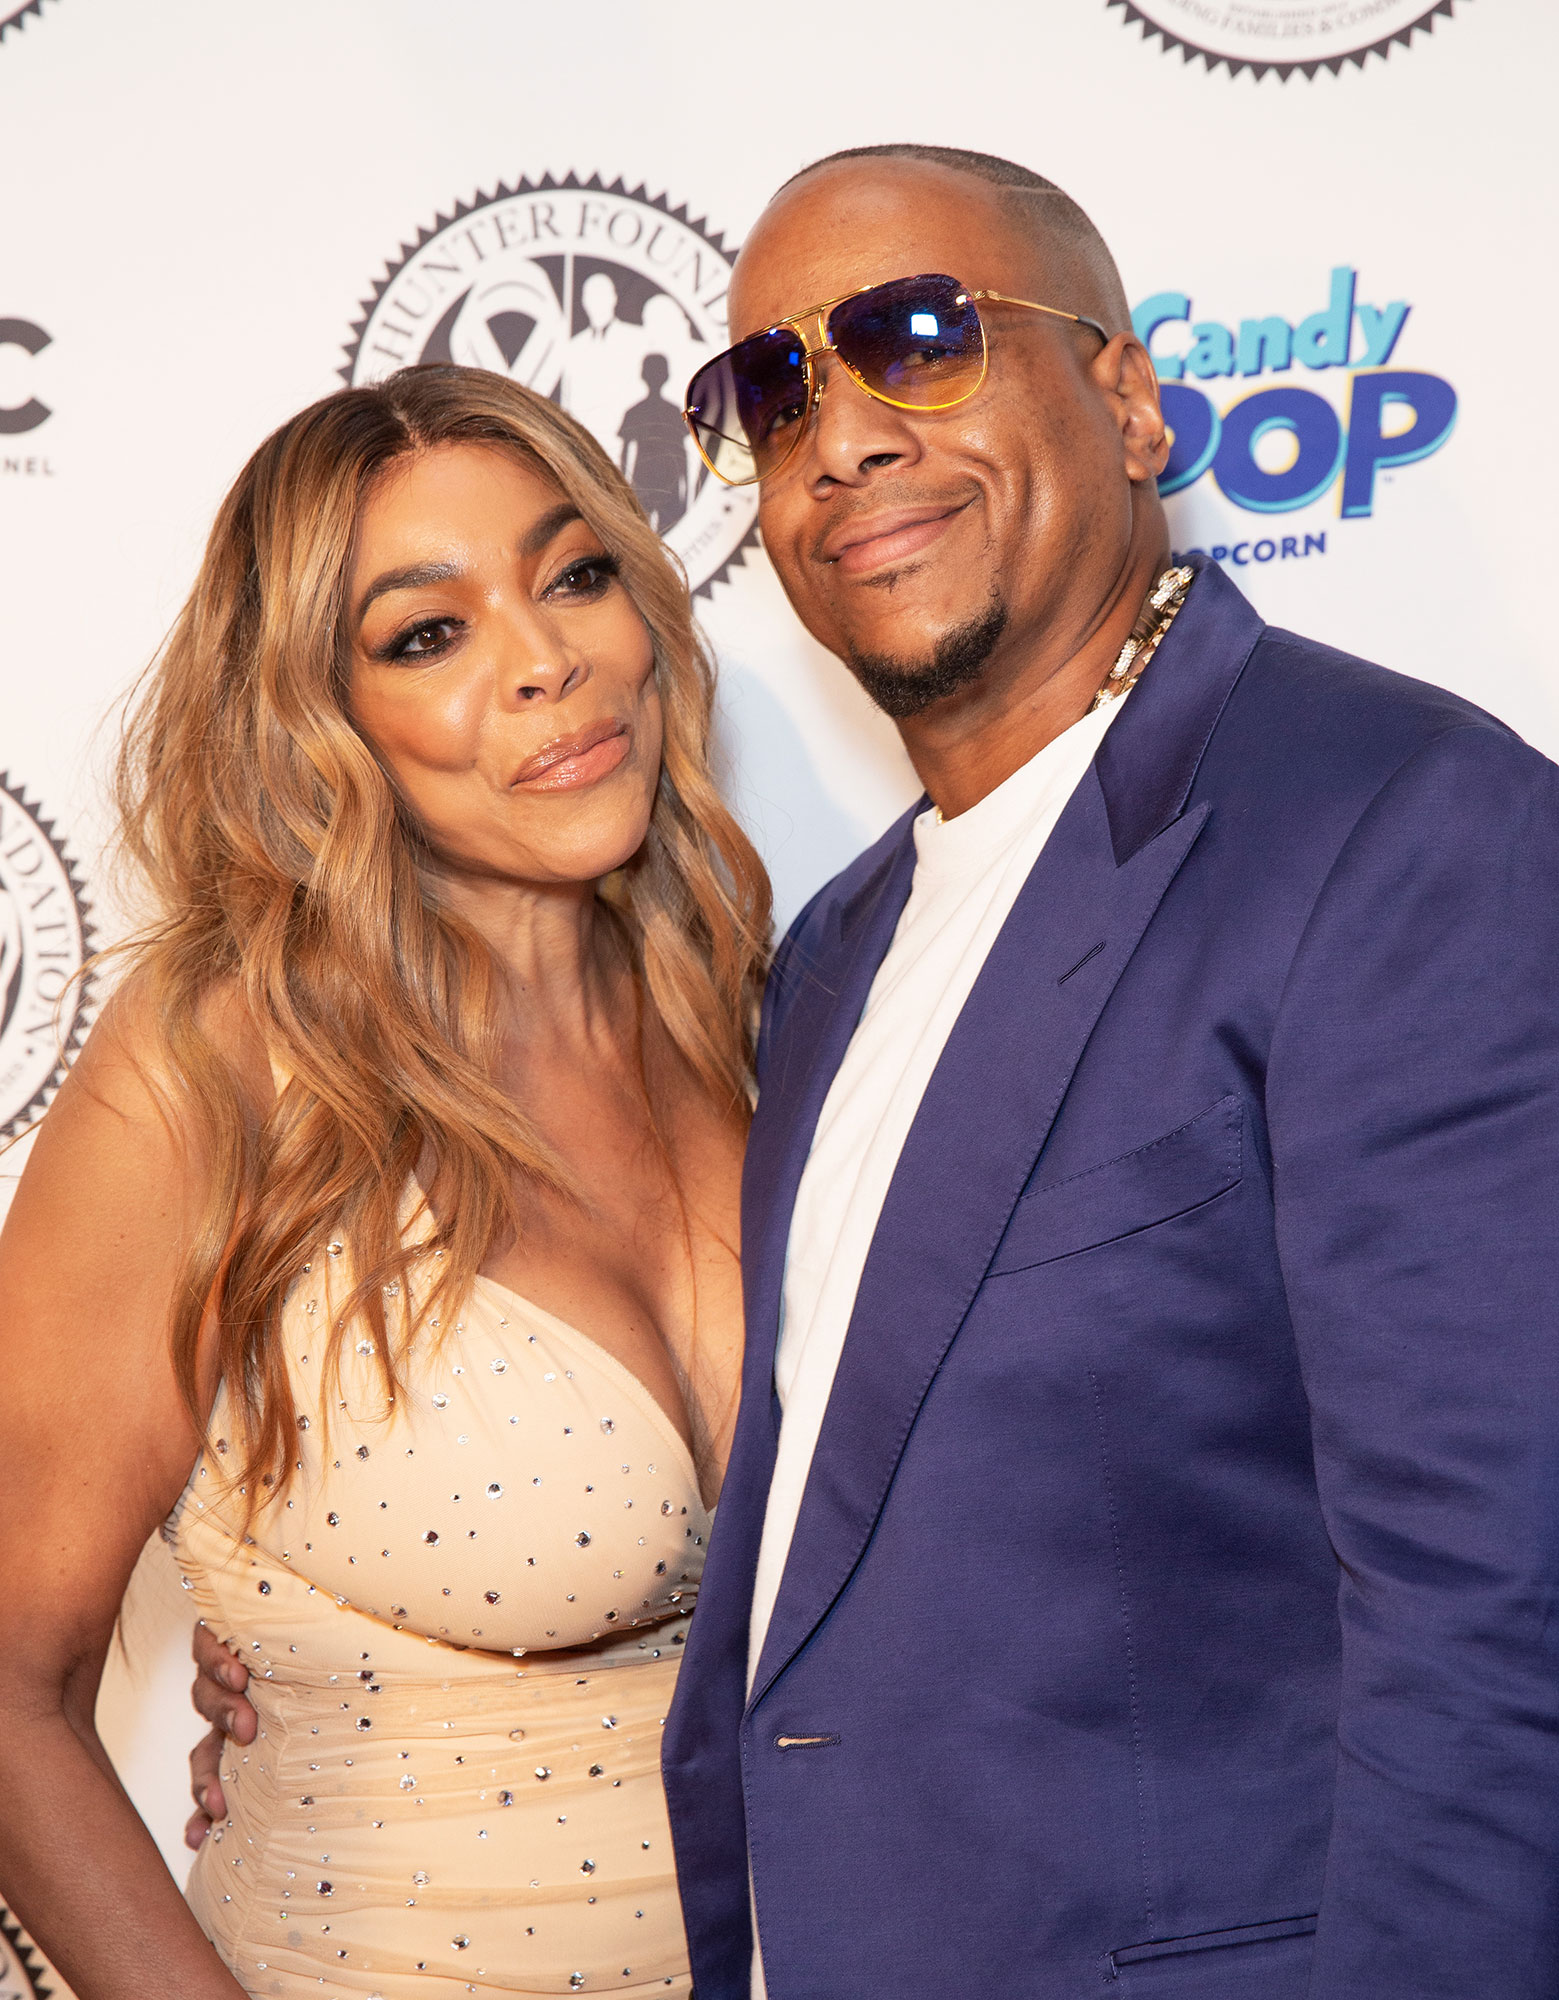 wendy williams kevin hunter candy pop - Wendy Williams wearing dress by Norma Kamali and Kevin Hunter attend Wendy Williams and The Hunter Foundation gala at Hammerstein Ballroom.